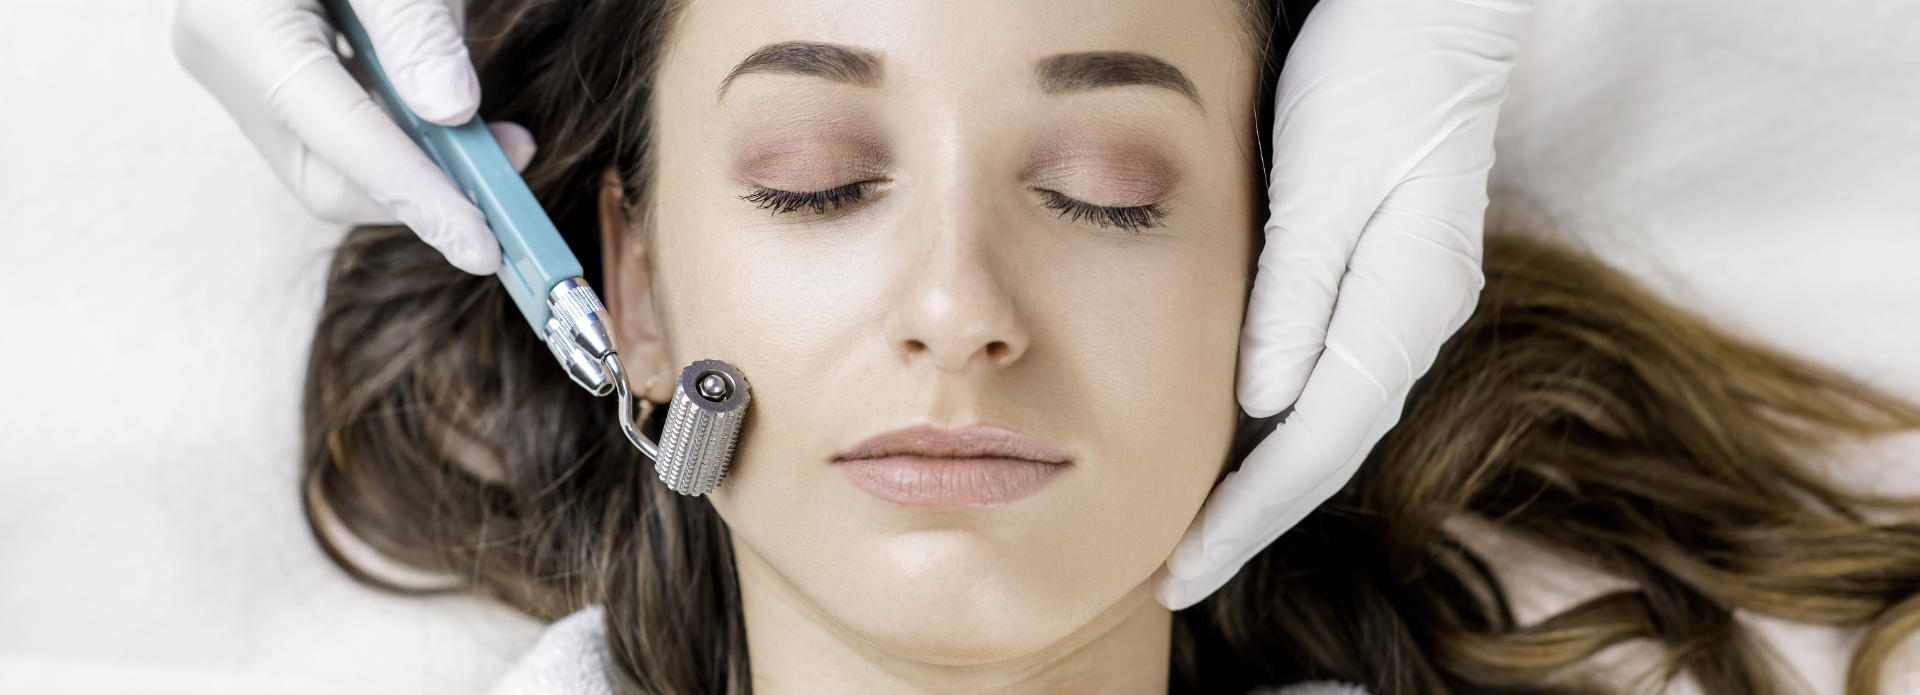 face of a beautiful woman during a cosmetic procedure